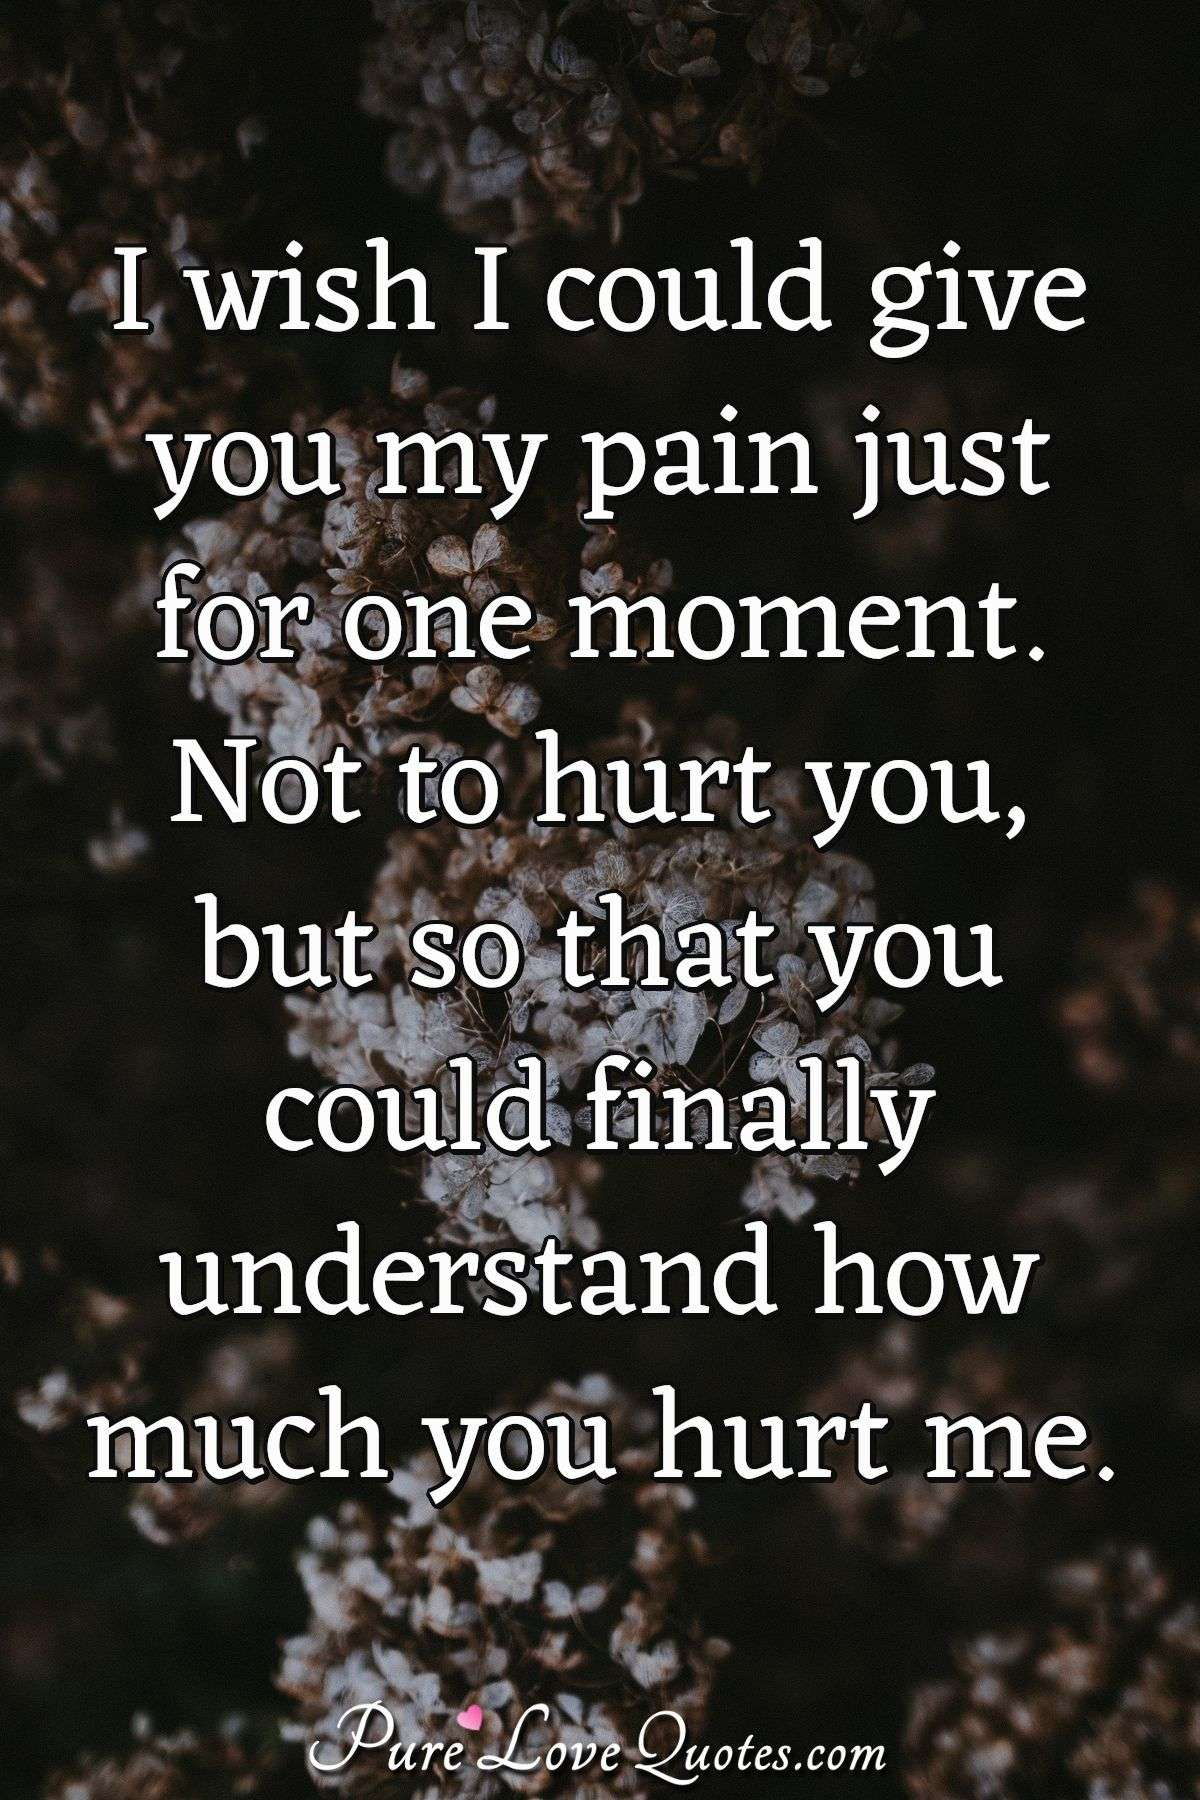 I wish I could give you my pain just for one moment. Not to hurt